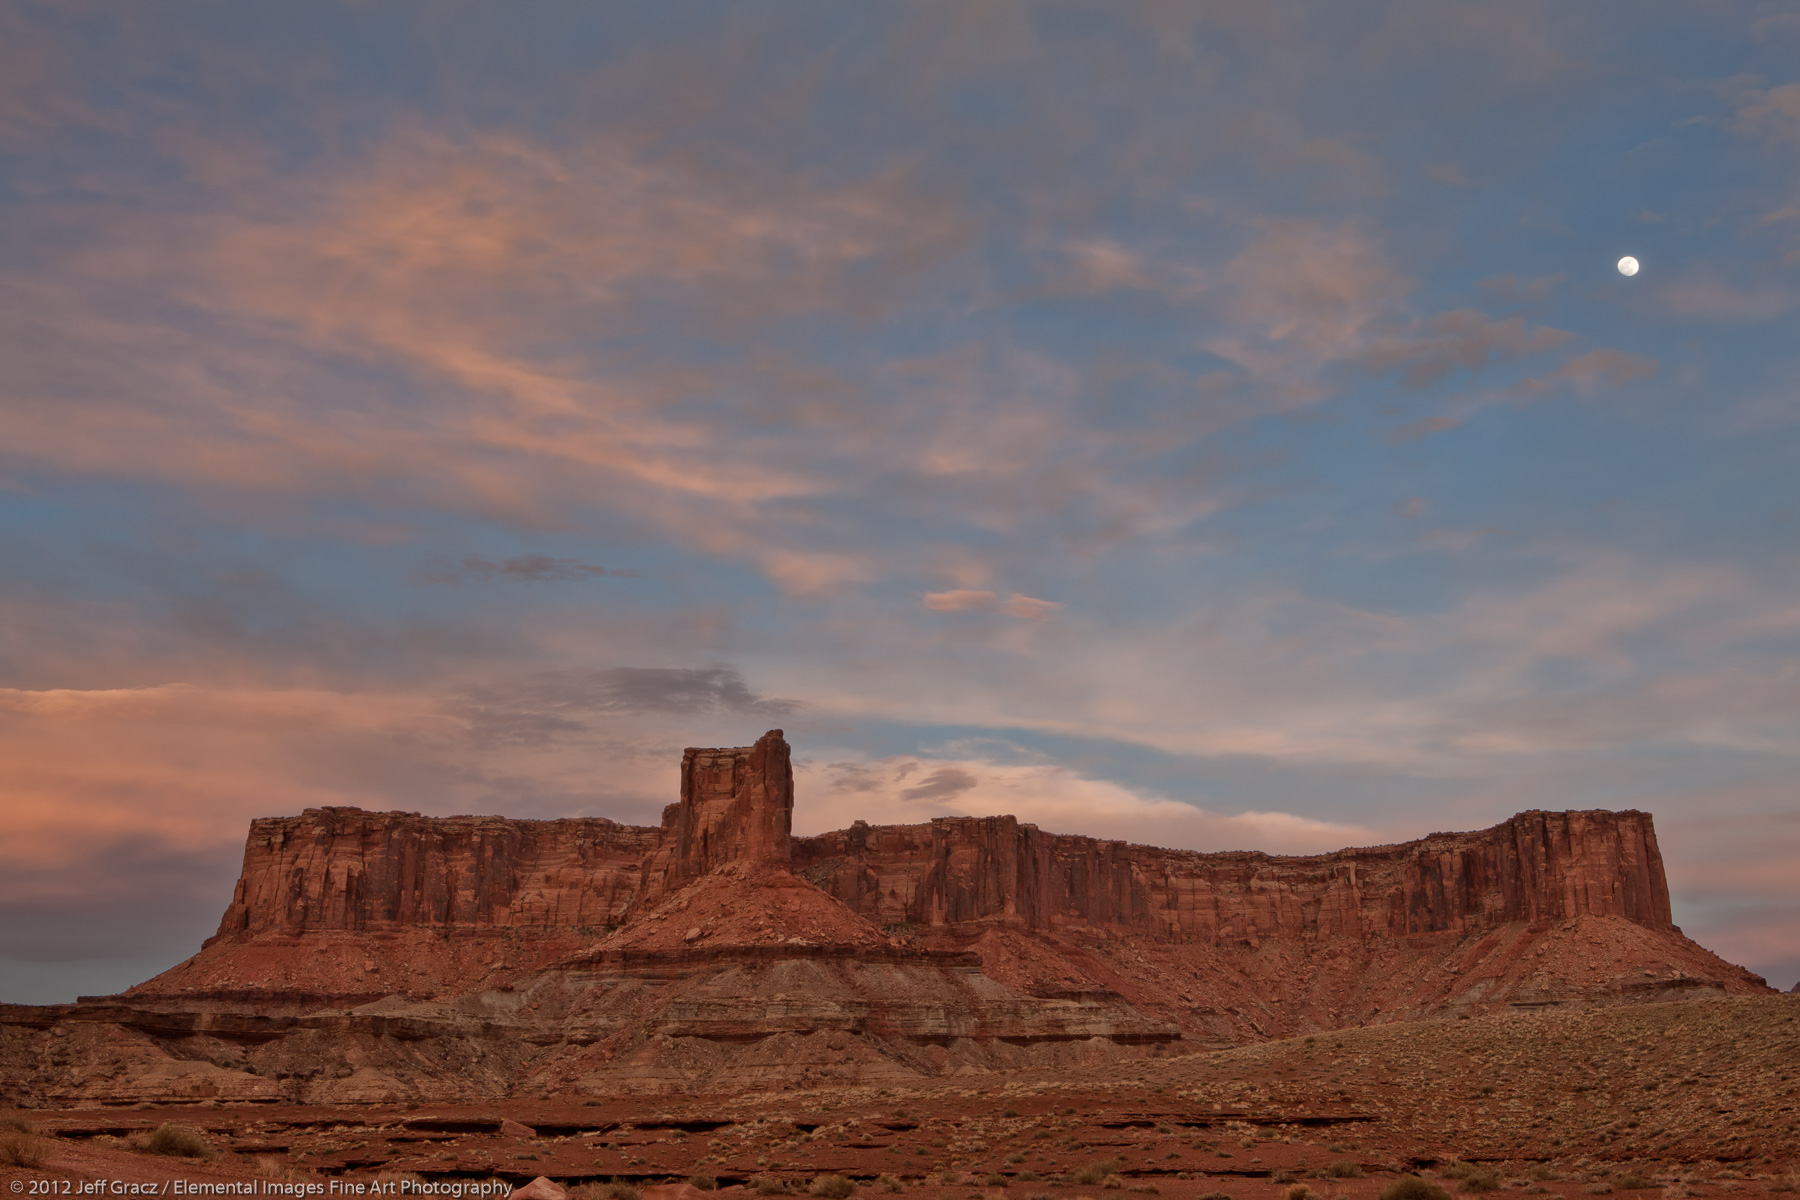 Candlestick Tower Moonrise | Canyonlands National Park | UT | USA - © © 2012 Jeff Gracz / Elemental Images Fine Art Photography - All Rights Reserved Worldwide